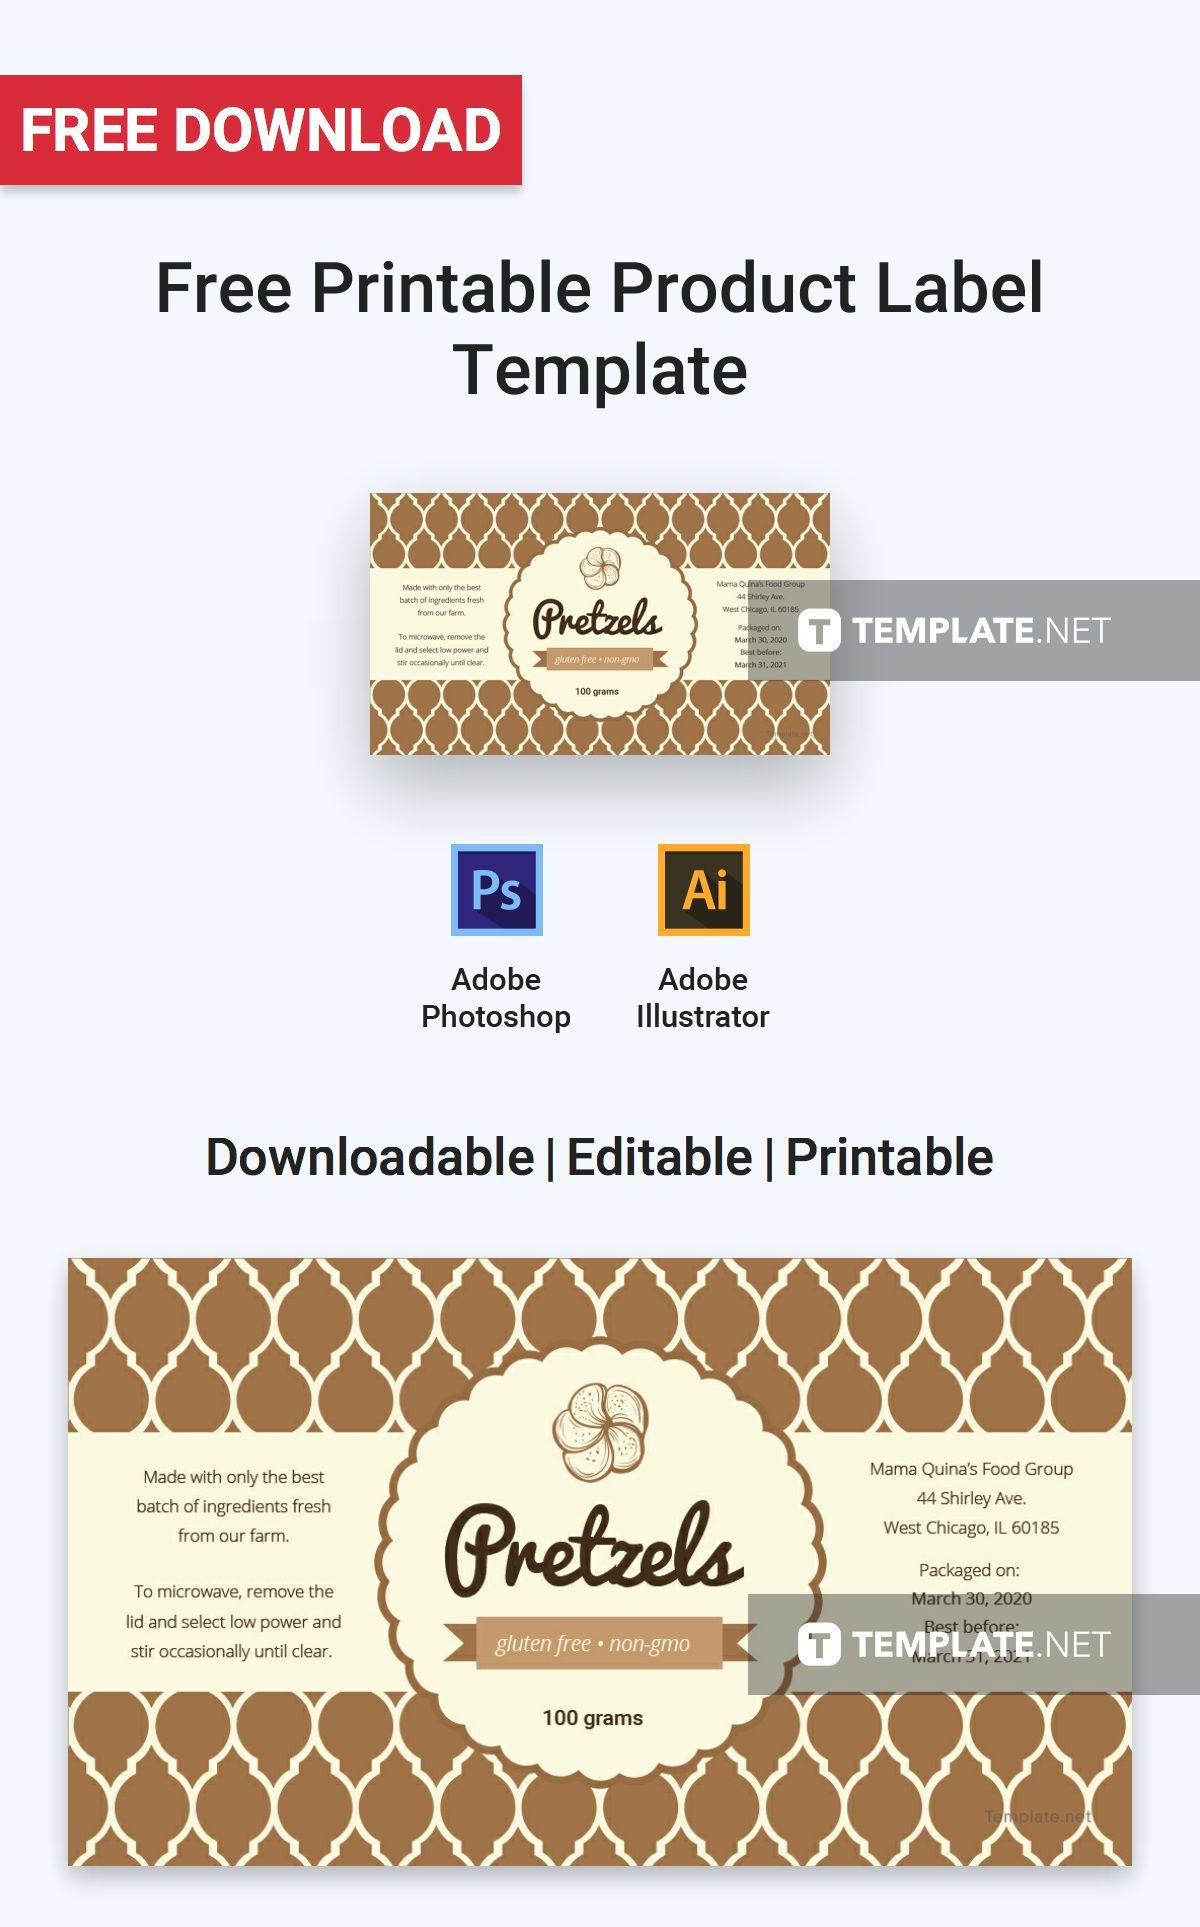 004 Sensational Microsoft Word Label Template Free Download Picture Full